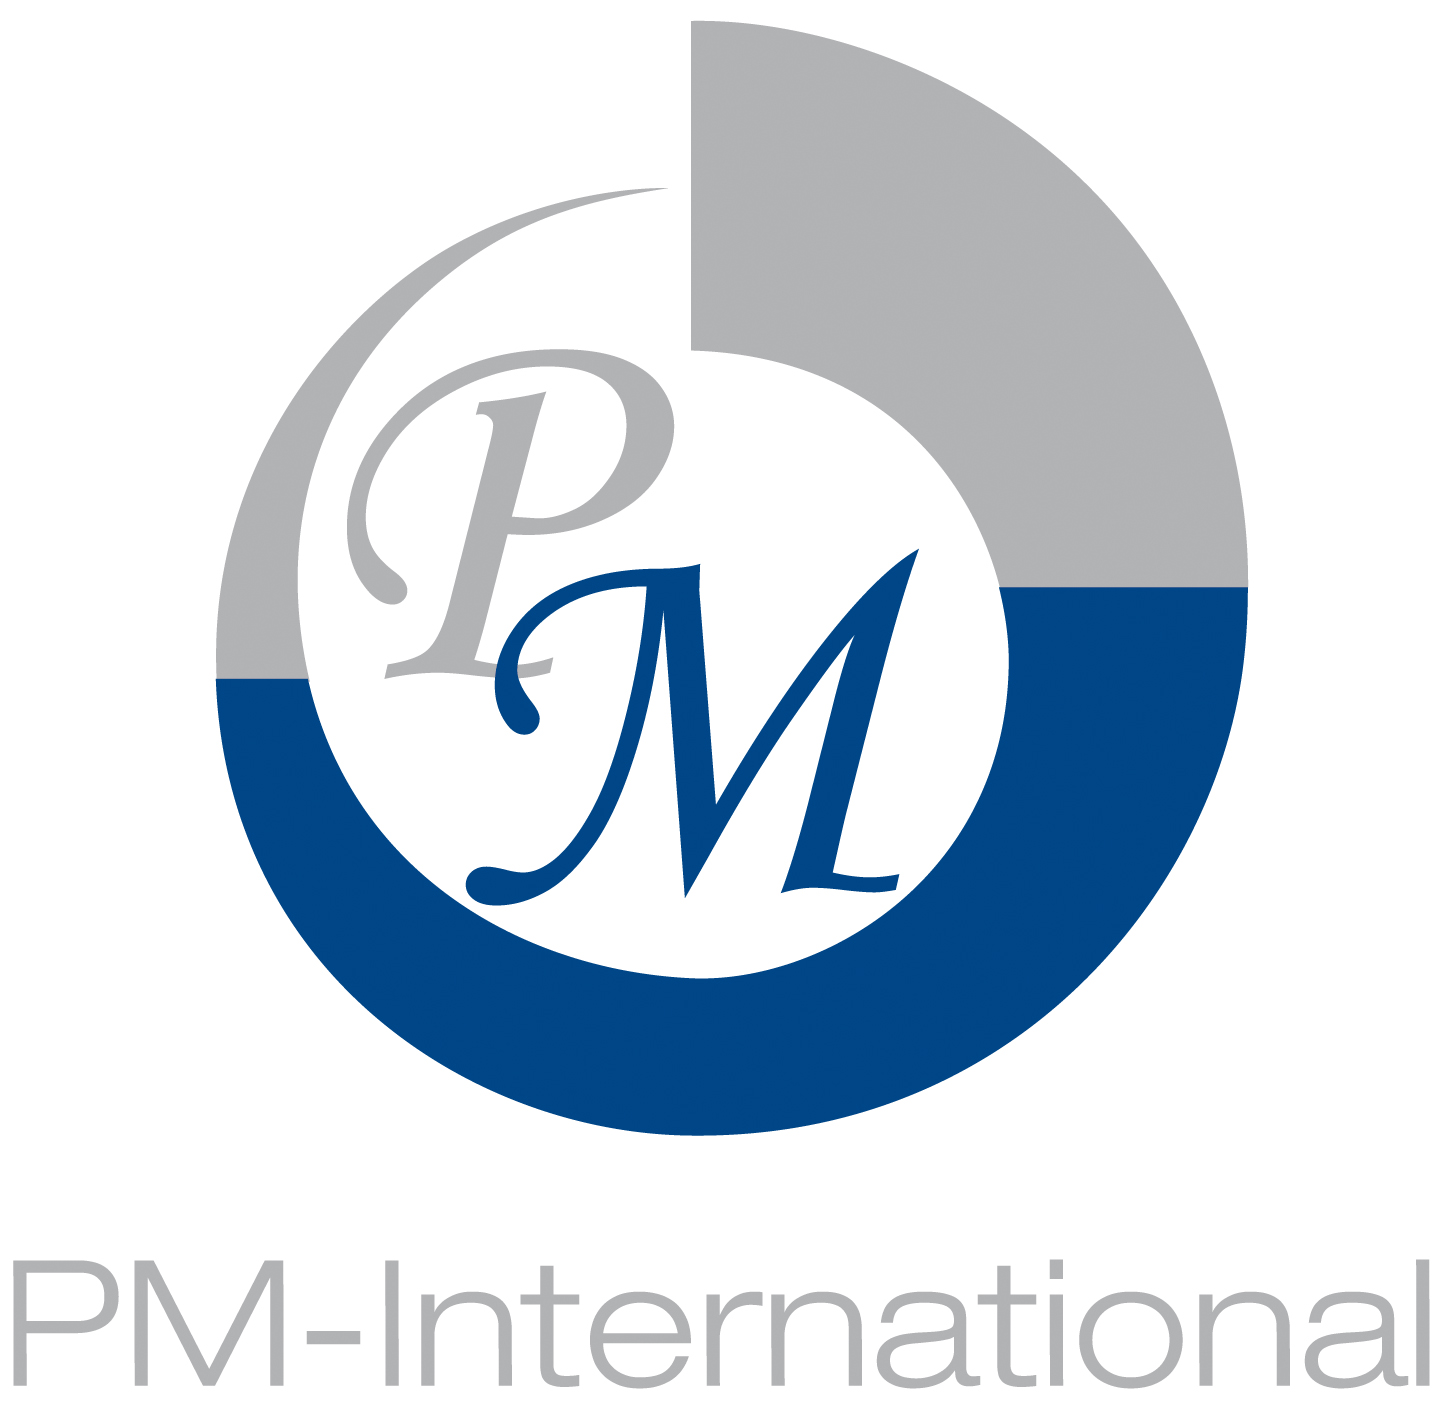 How to make money online and how to get free referrals with Pm International